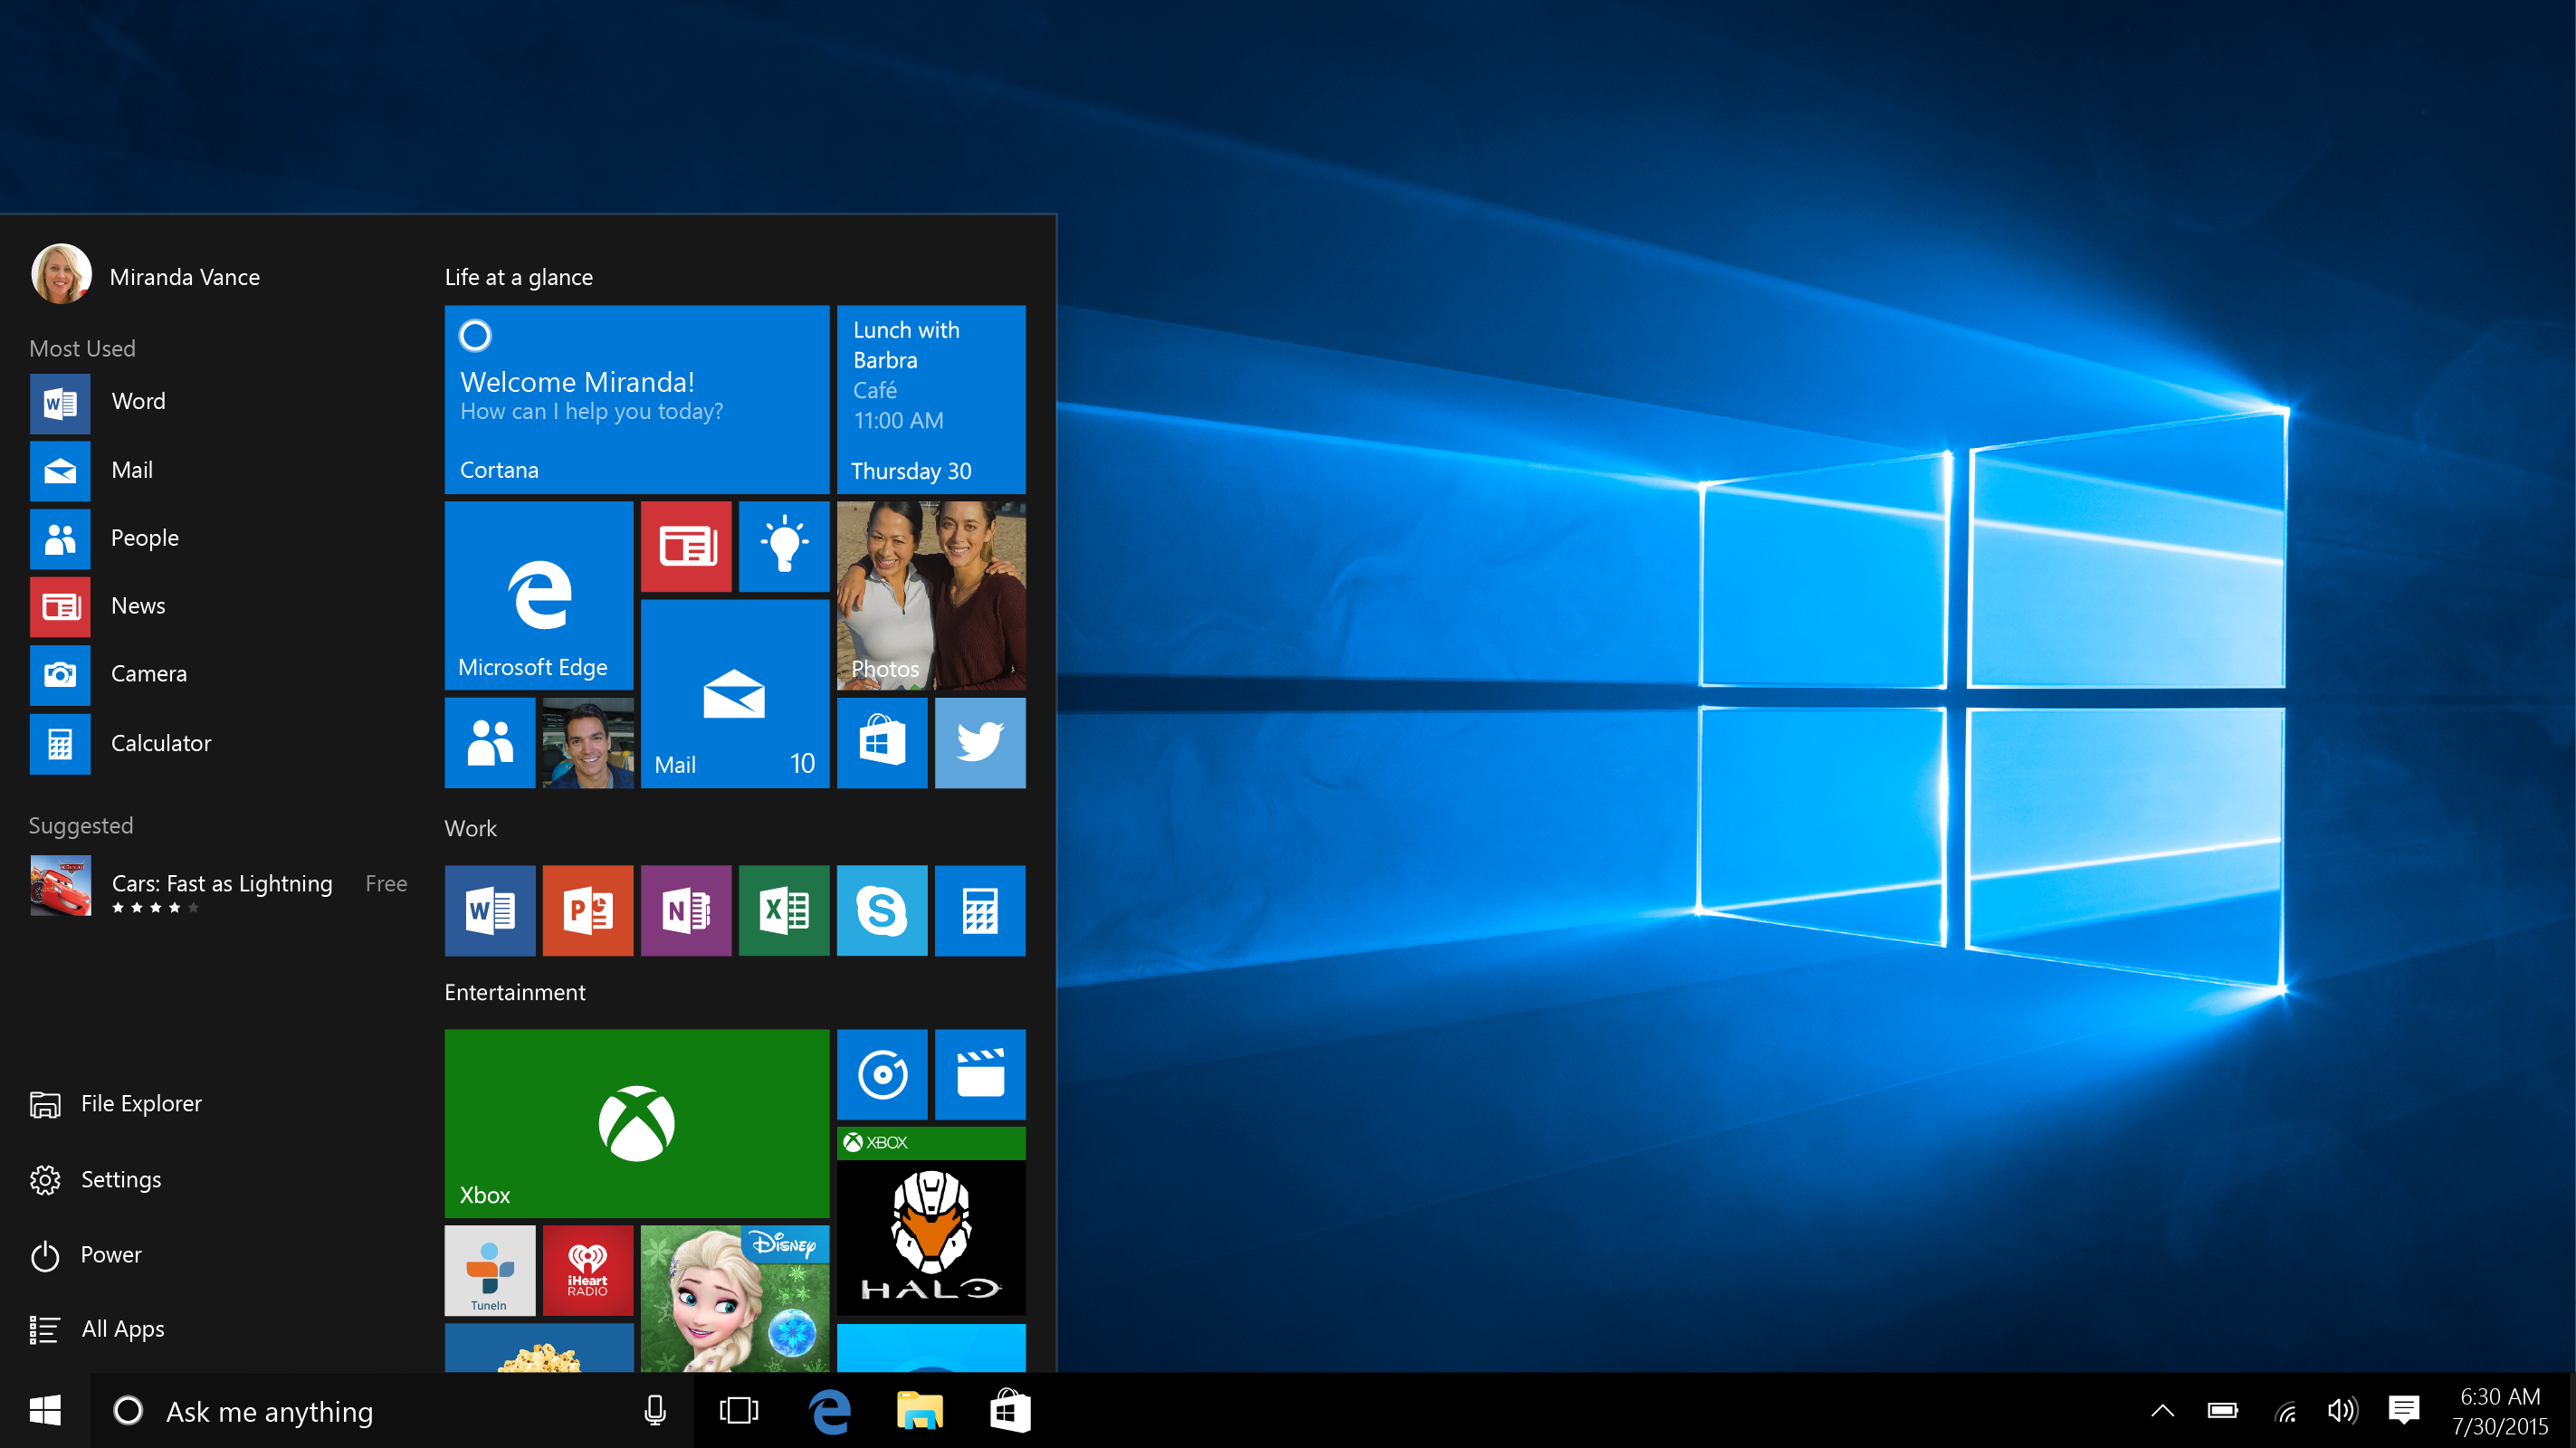 <strong>Windows 10</strong> which released on July 29, 2015, blends the familiar layout of Windows 7 with touch features from Windows 8. The Start menu makes a grand reentrance, with Live Tiles discreetly tucked inside. Cortana, Microsoft's speech-activated assistant for smartphones, will also debut across all devices.